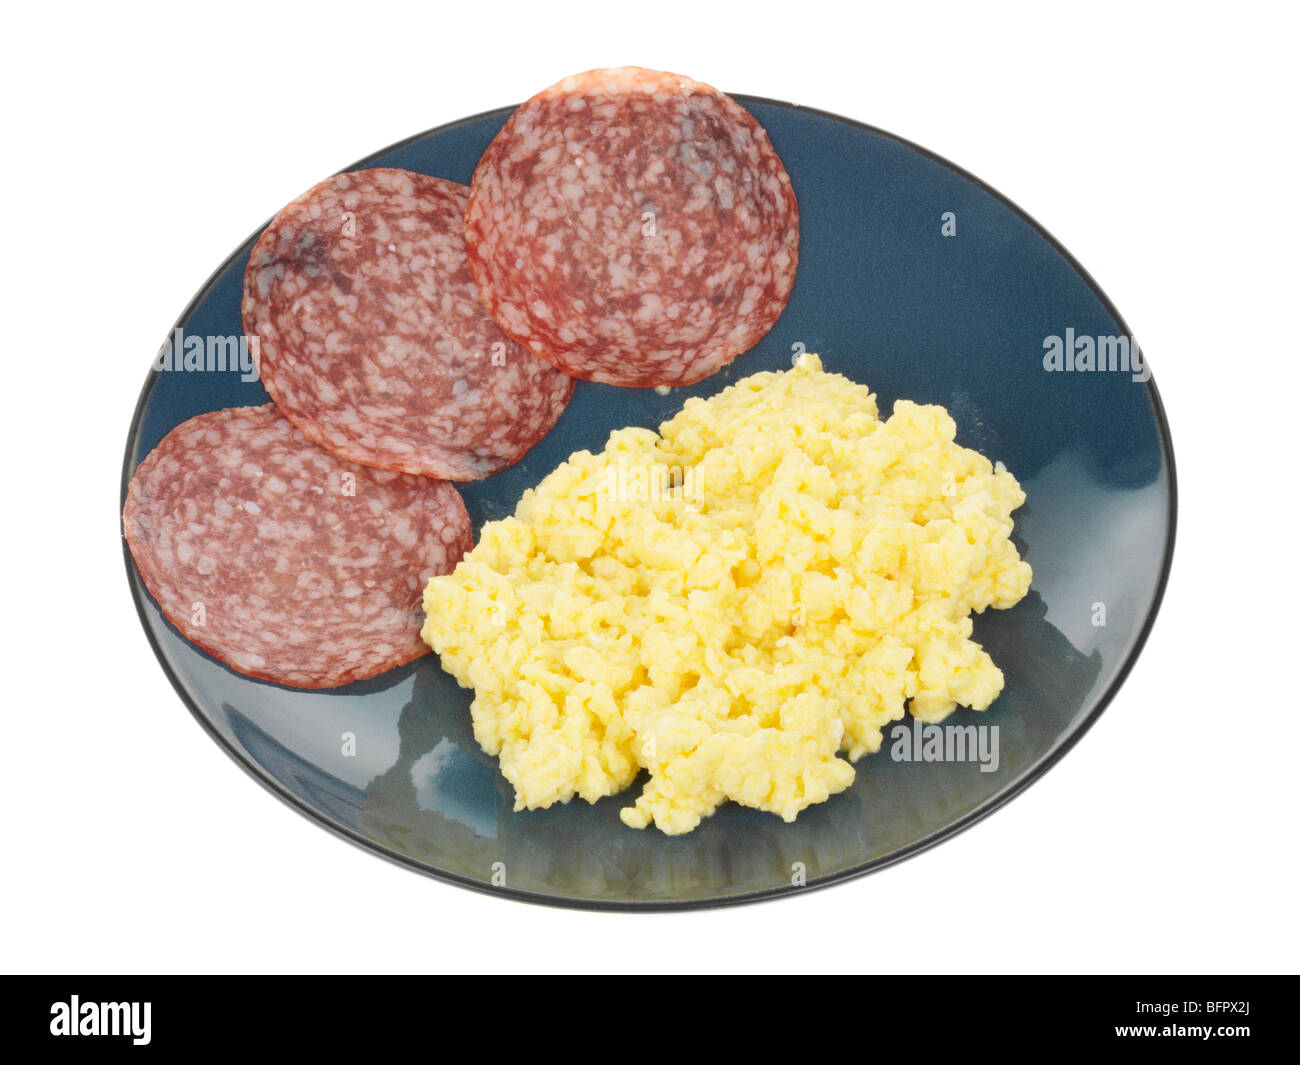 Scrambled Egg with Salami - Stock Image